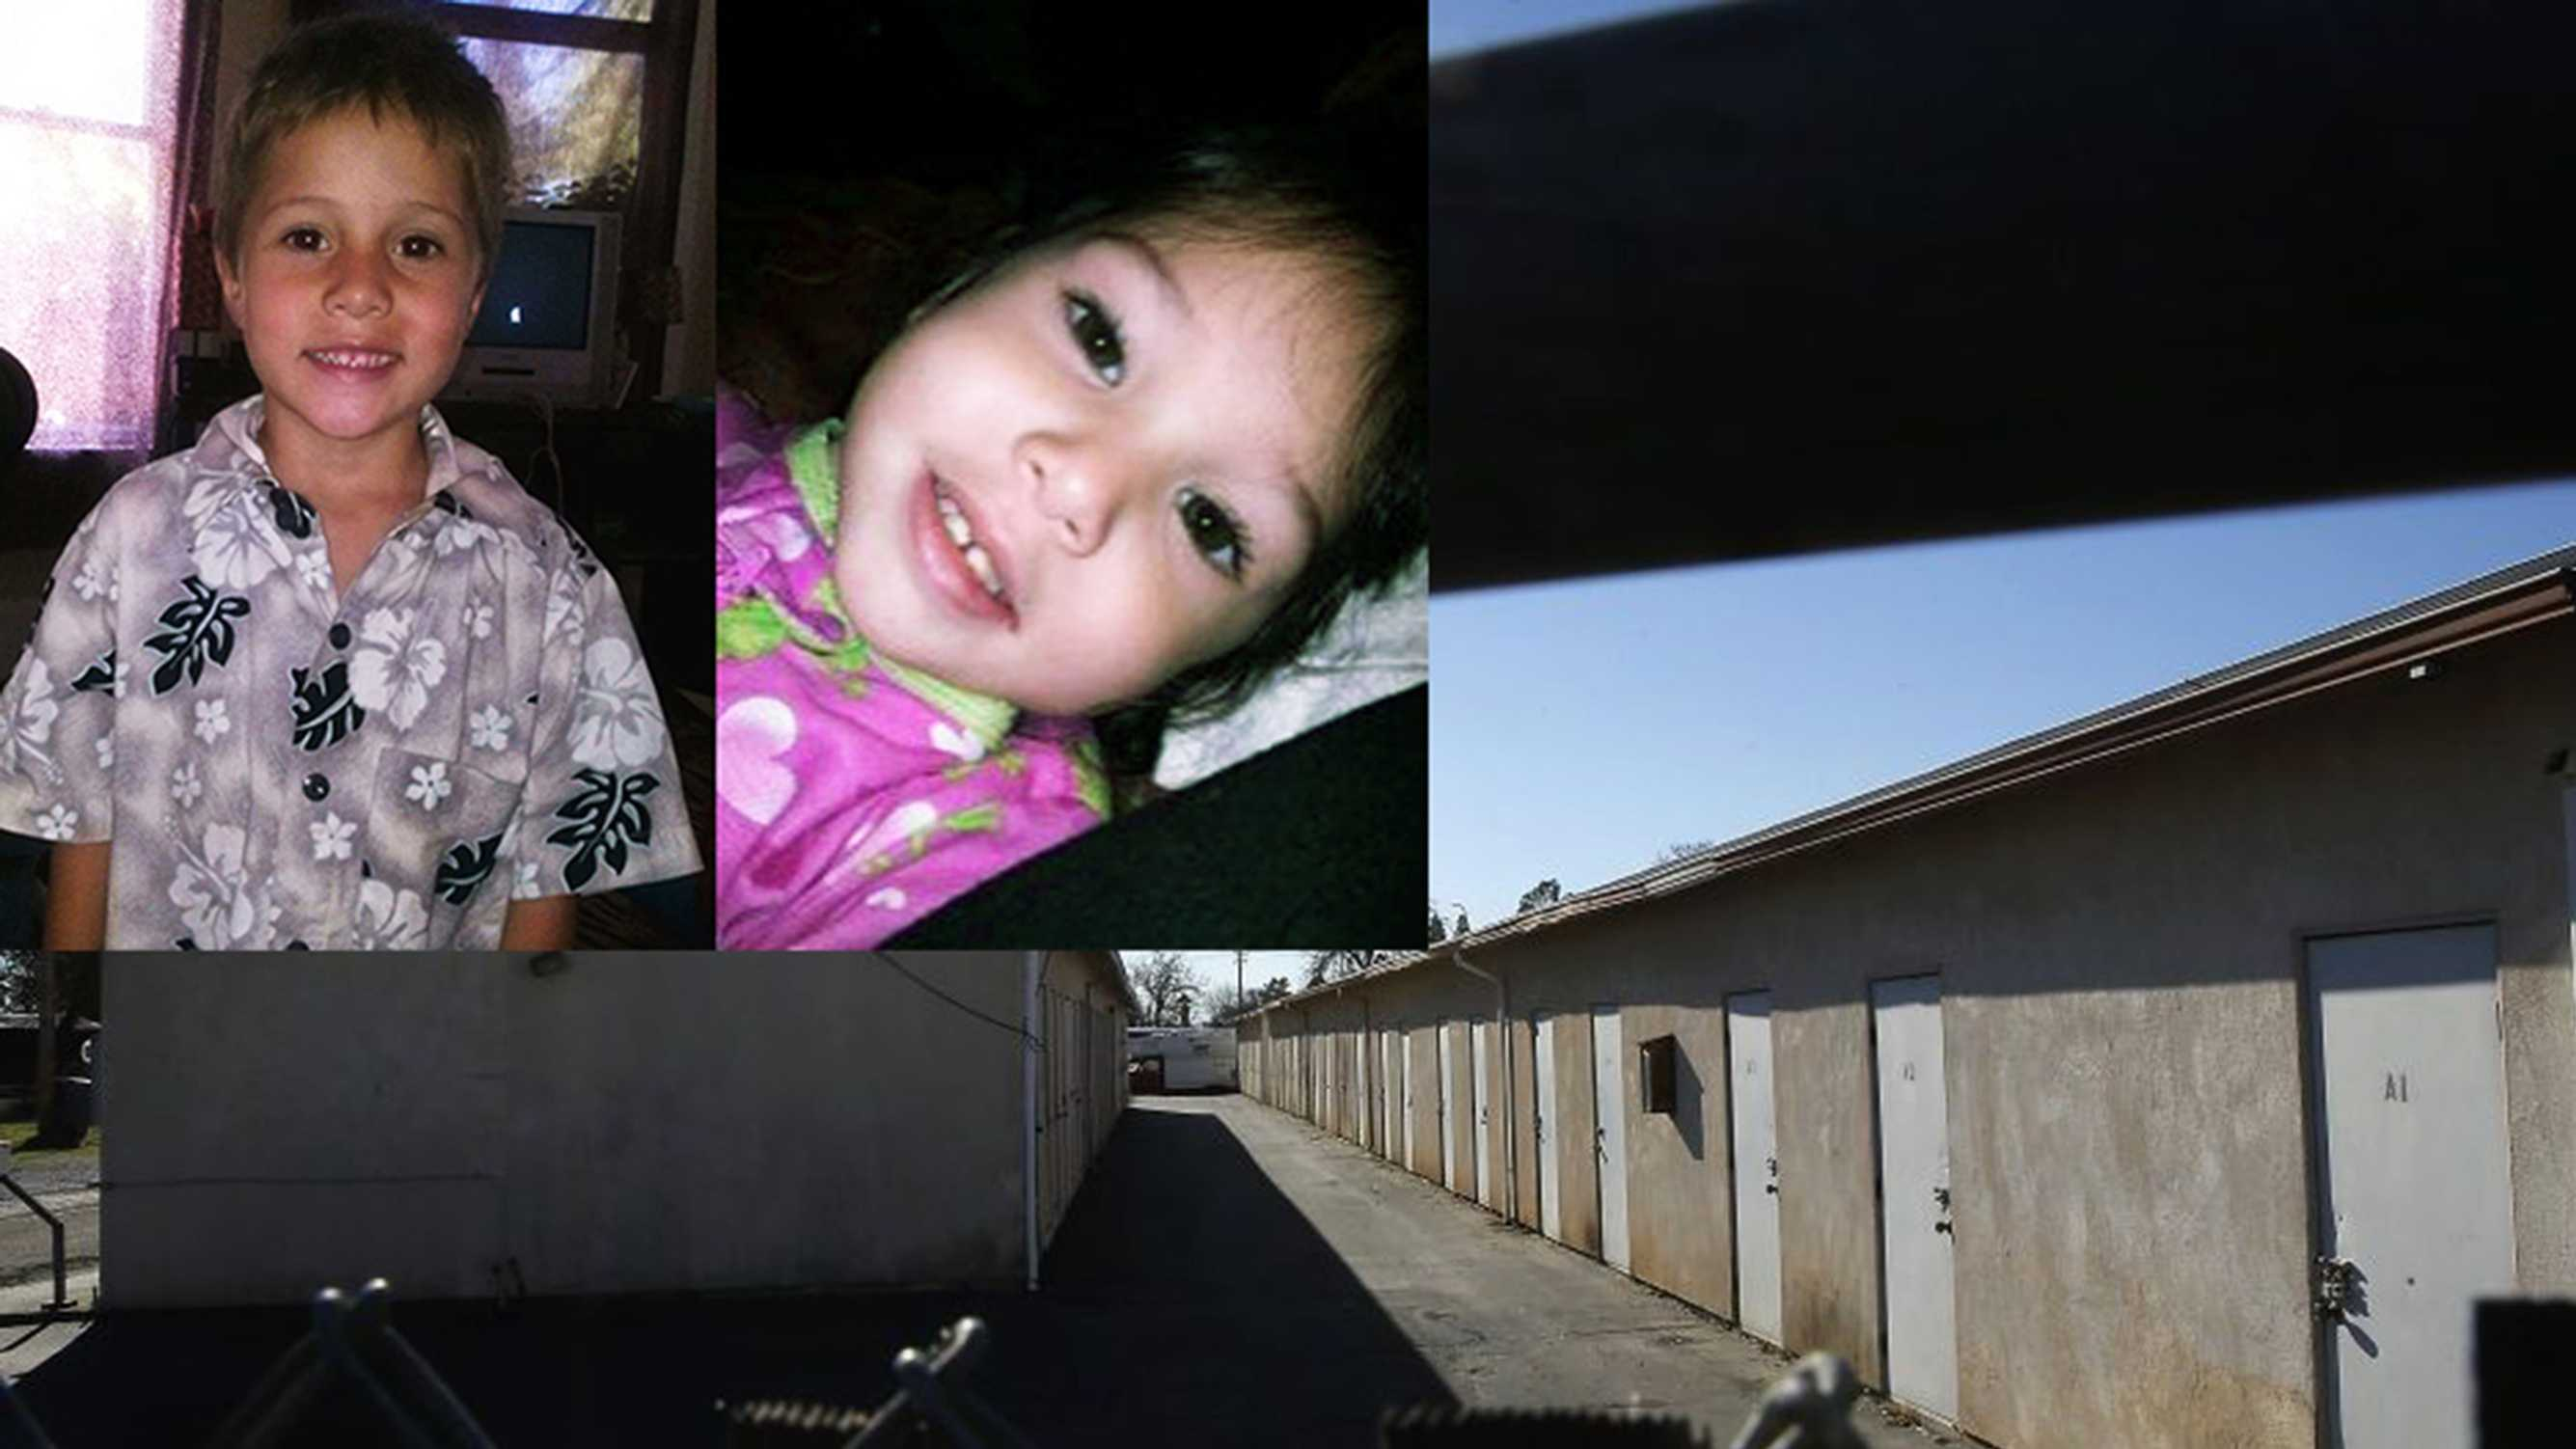 The bodies of Shaun and Delylah were found in this Redding, Calif., storage locker.